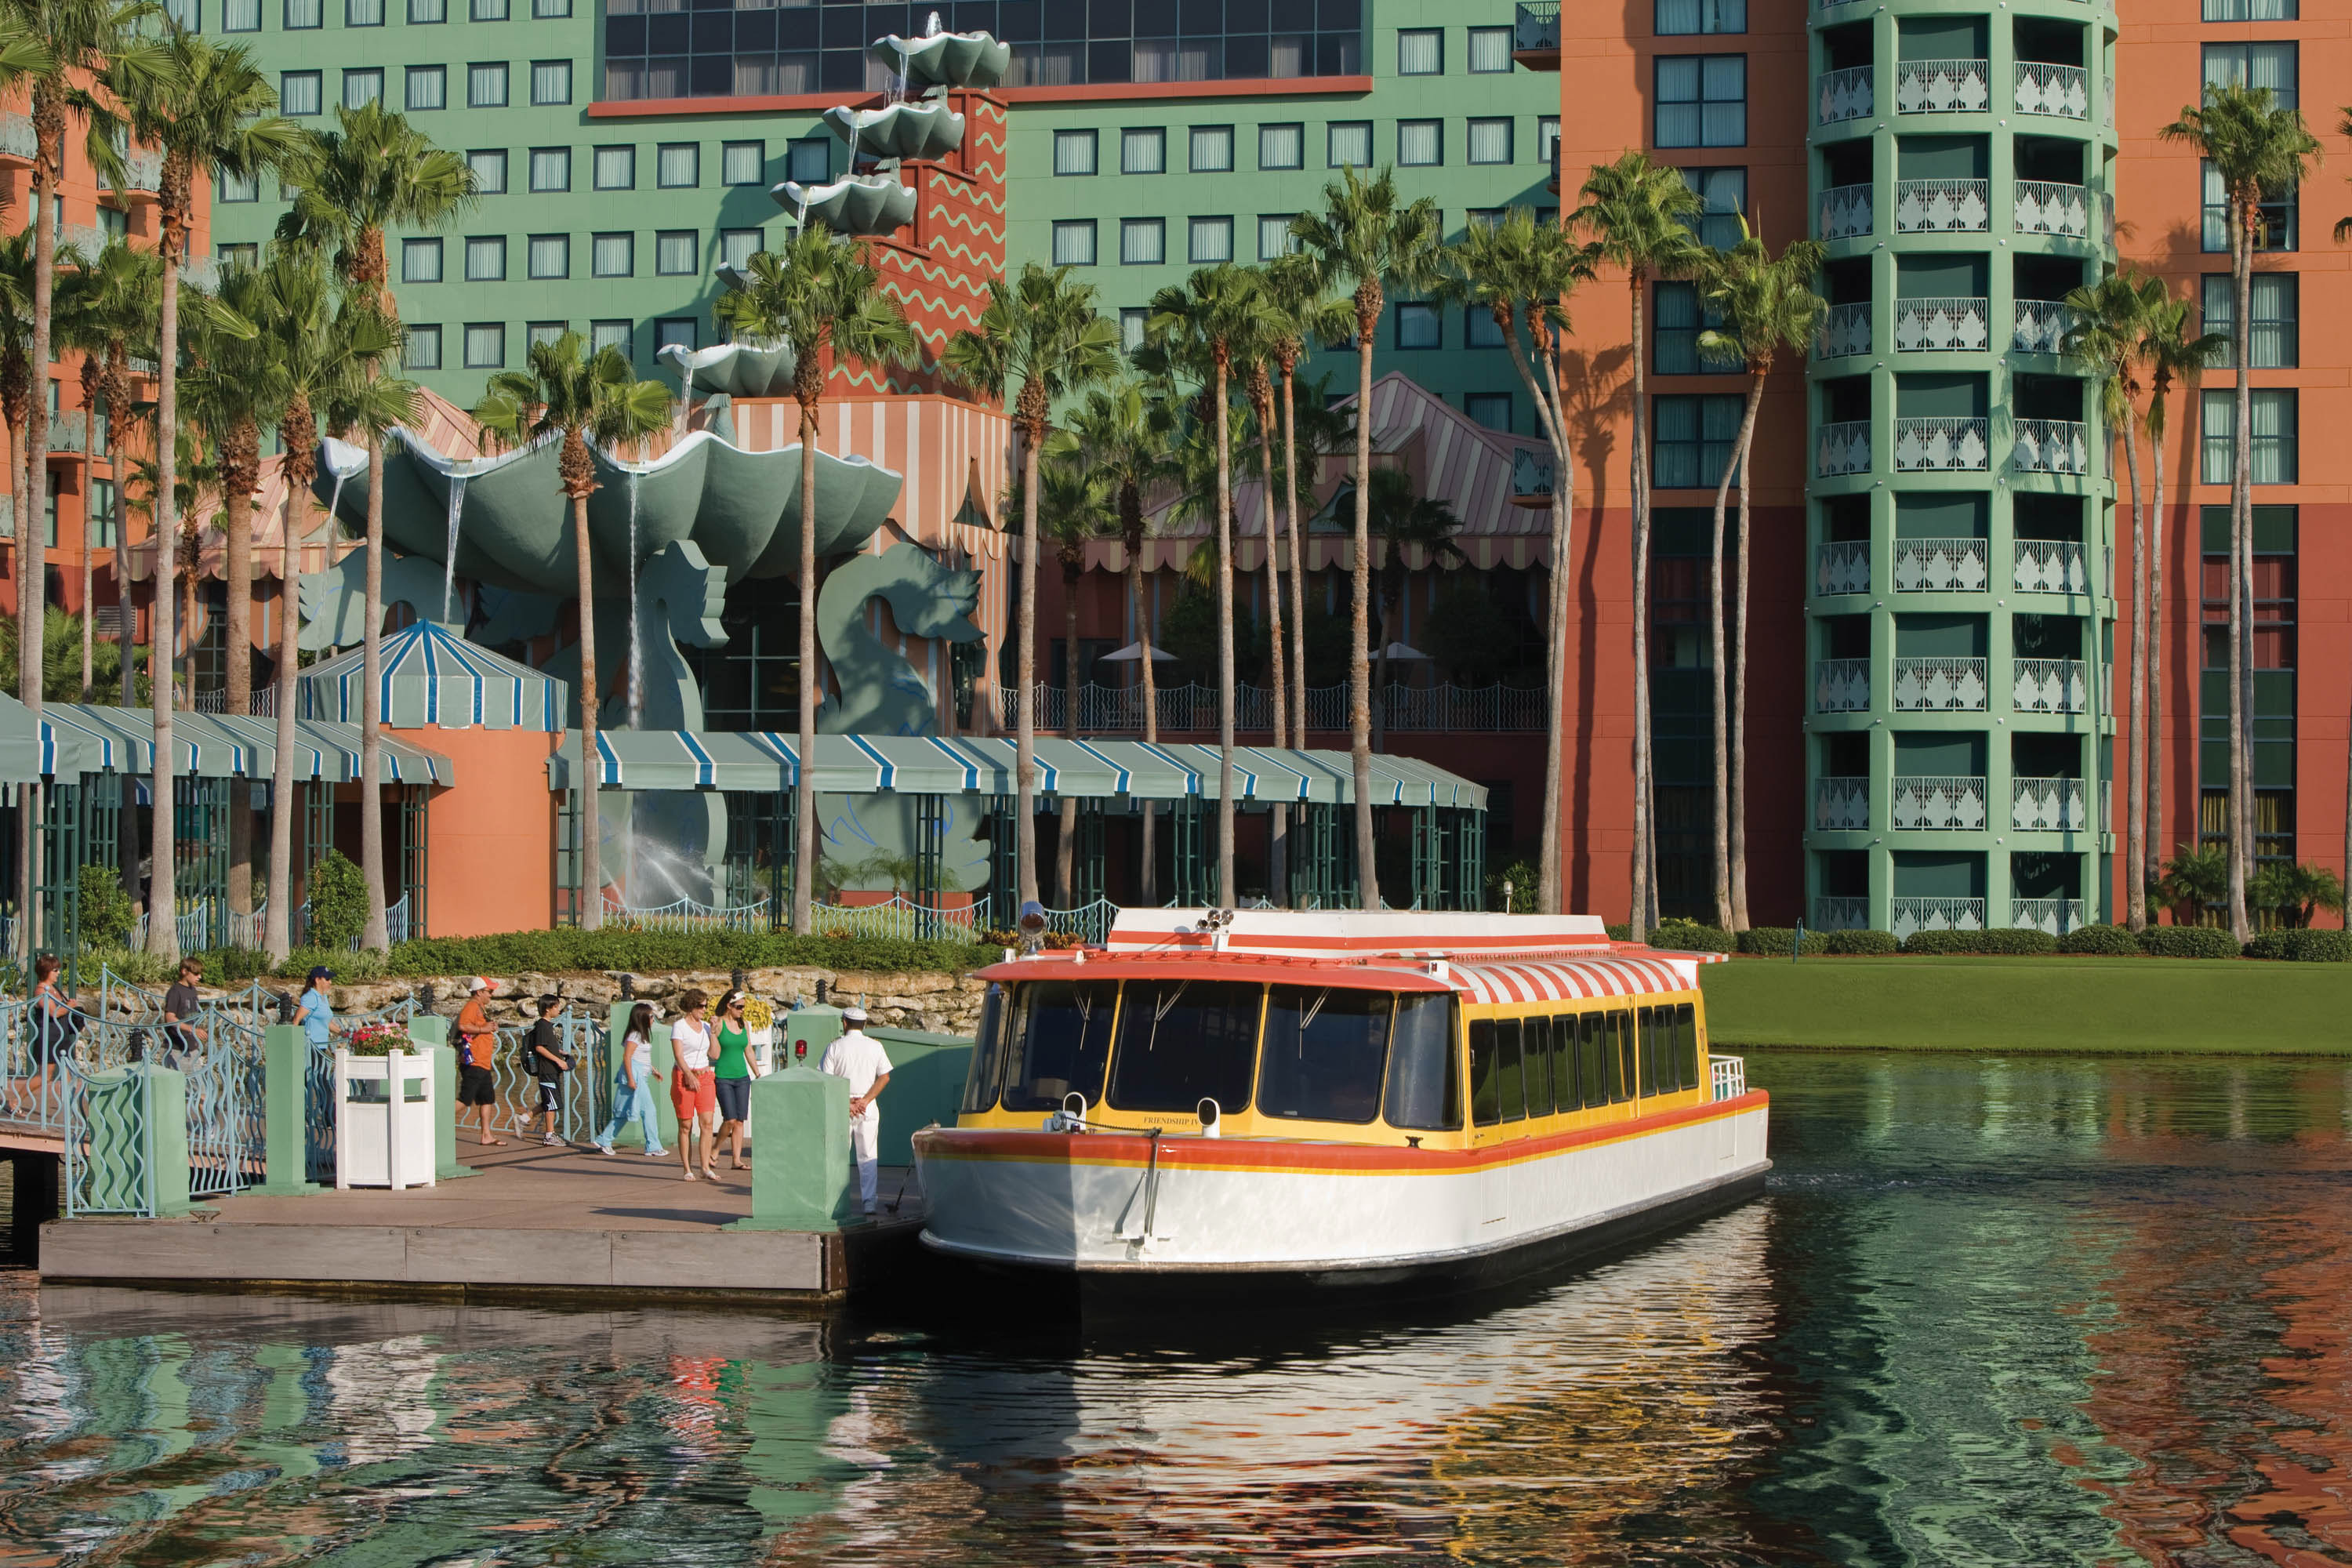 water building Boat Canal vehicle waterway River